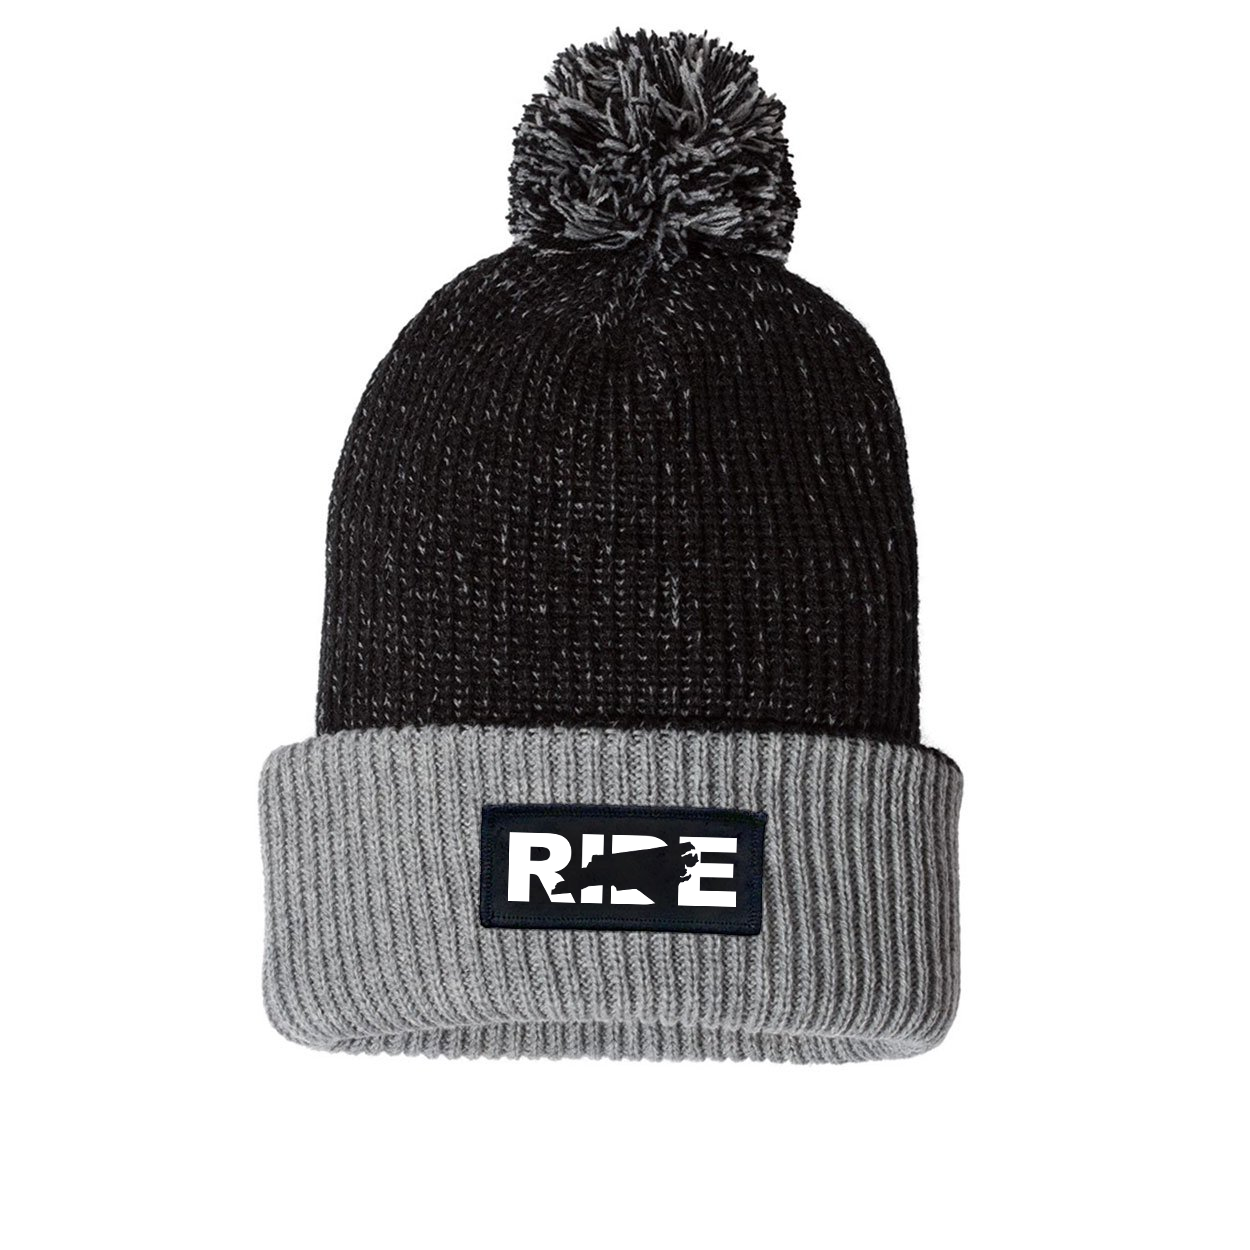 Ride North Carolina Night Out Woven Patch Roll Up Pom Knit Beanie Black/Gray (White Logo)